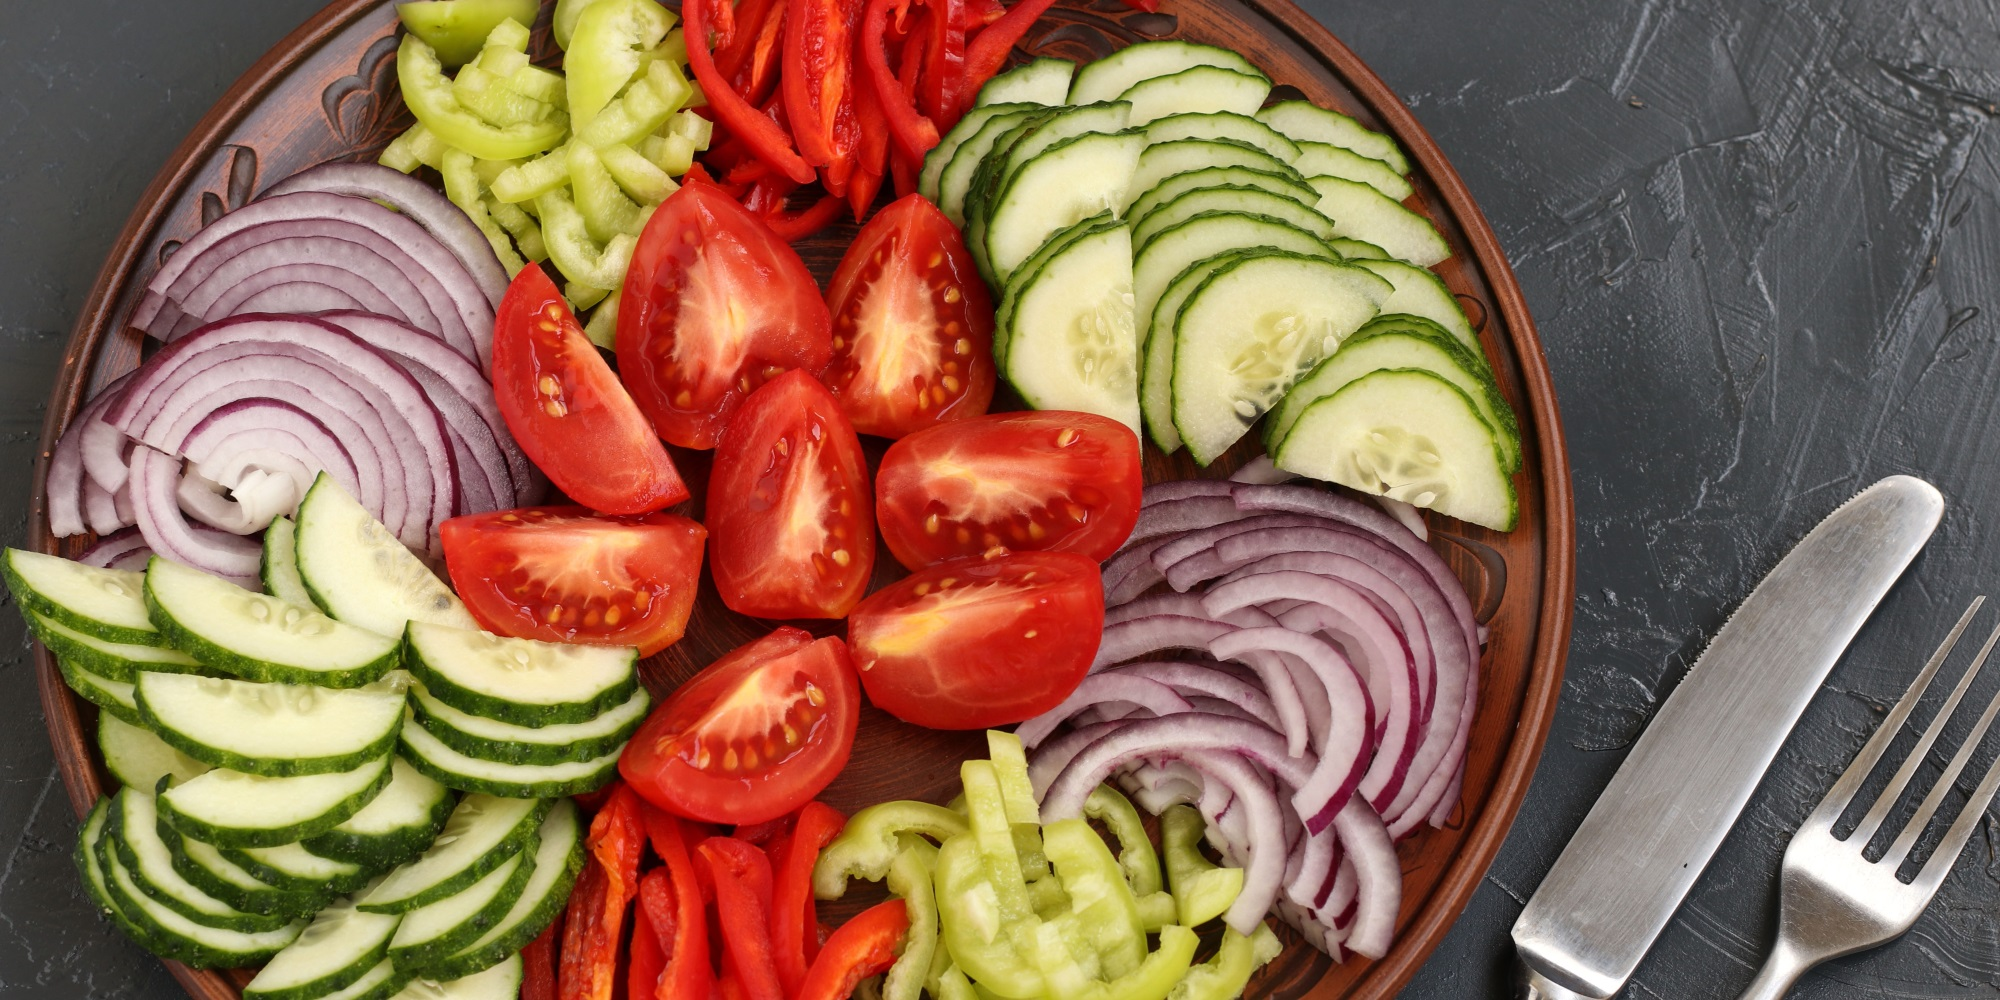 Tomatoes, cucumbers, onion and green pepper